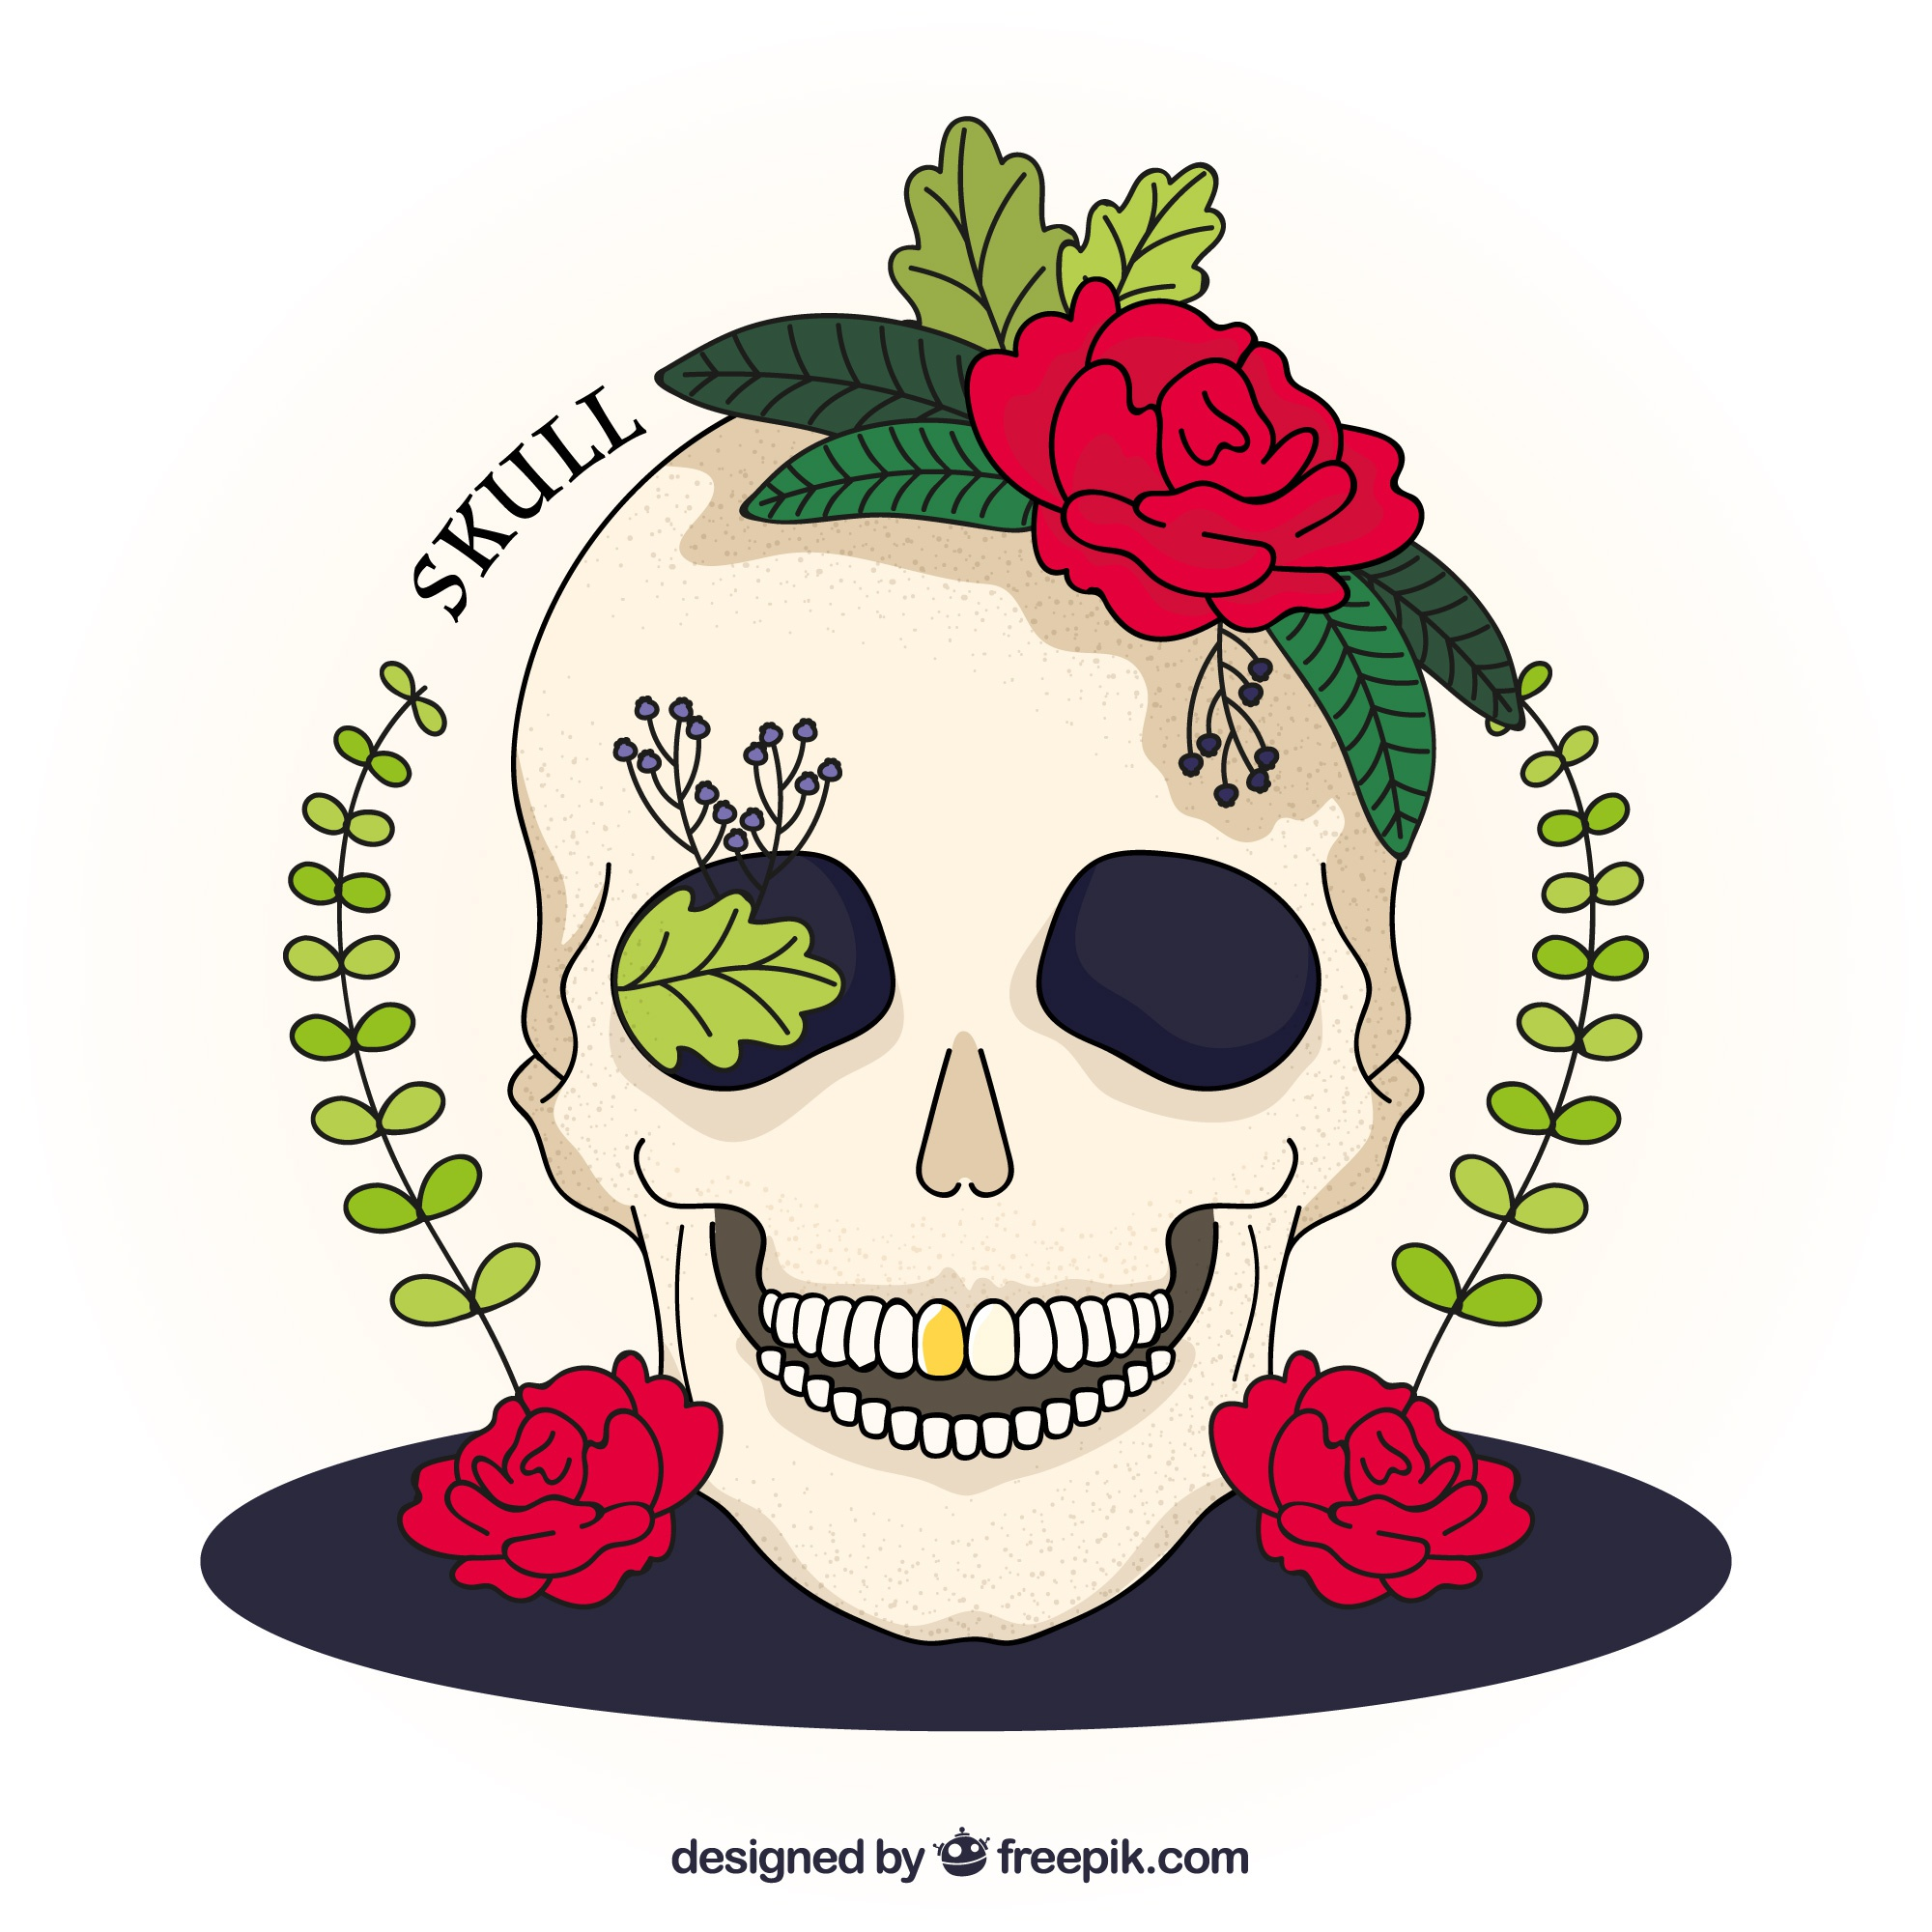 Illustration of hand drawn skull with roses